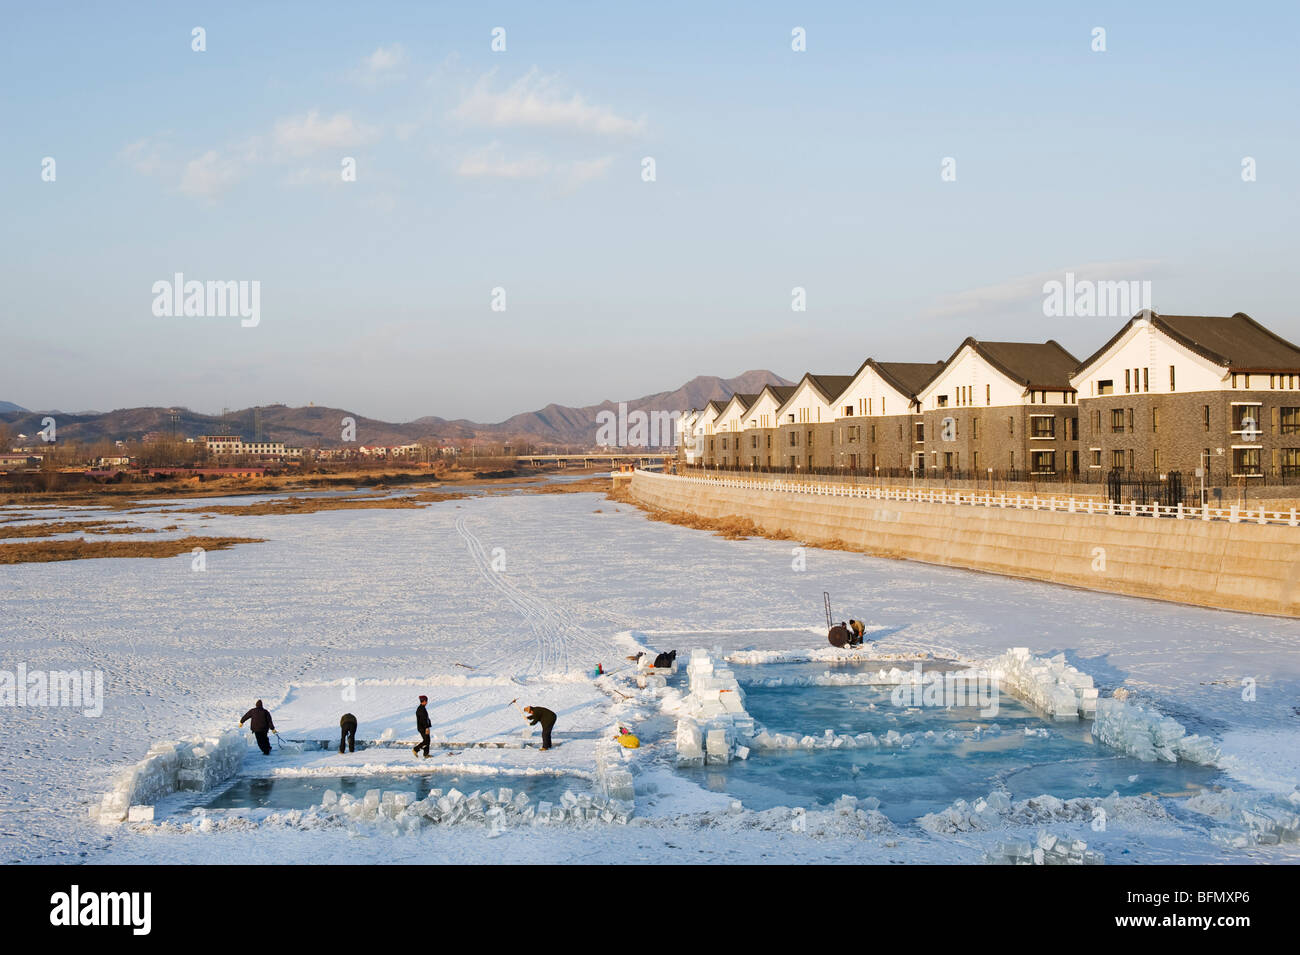 China, Hebei Province, Chengde, ice blocks being taken out of a frozen river - Stock Image